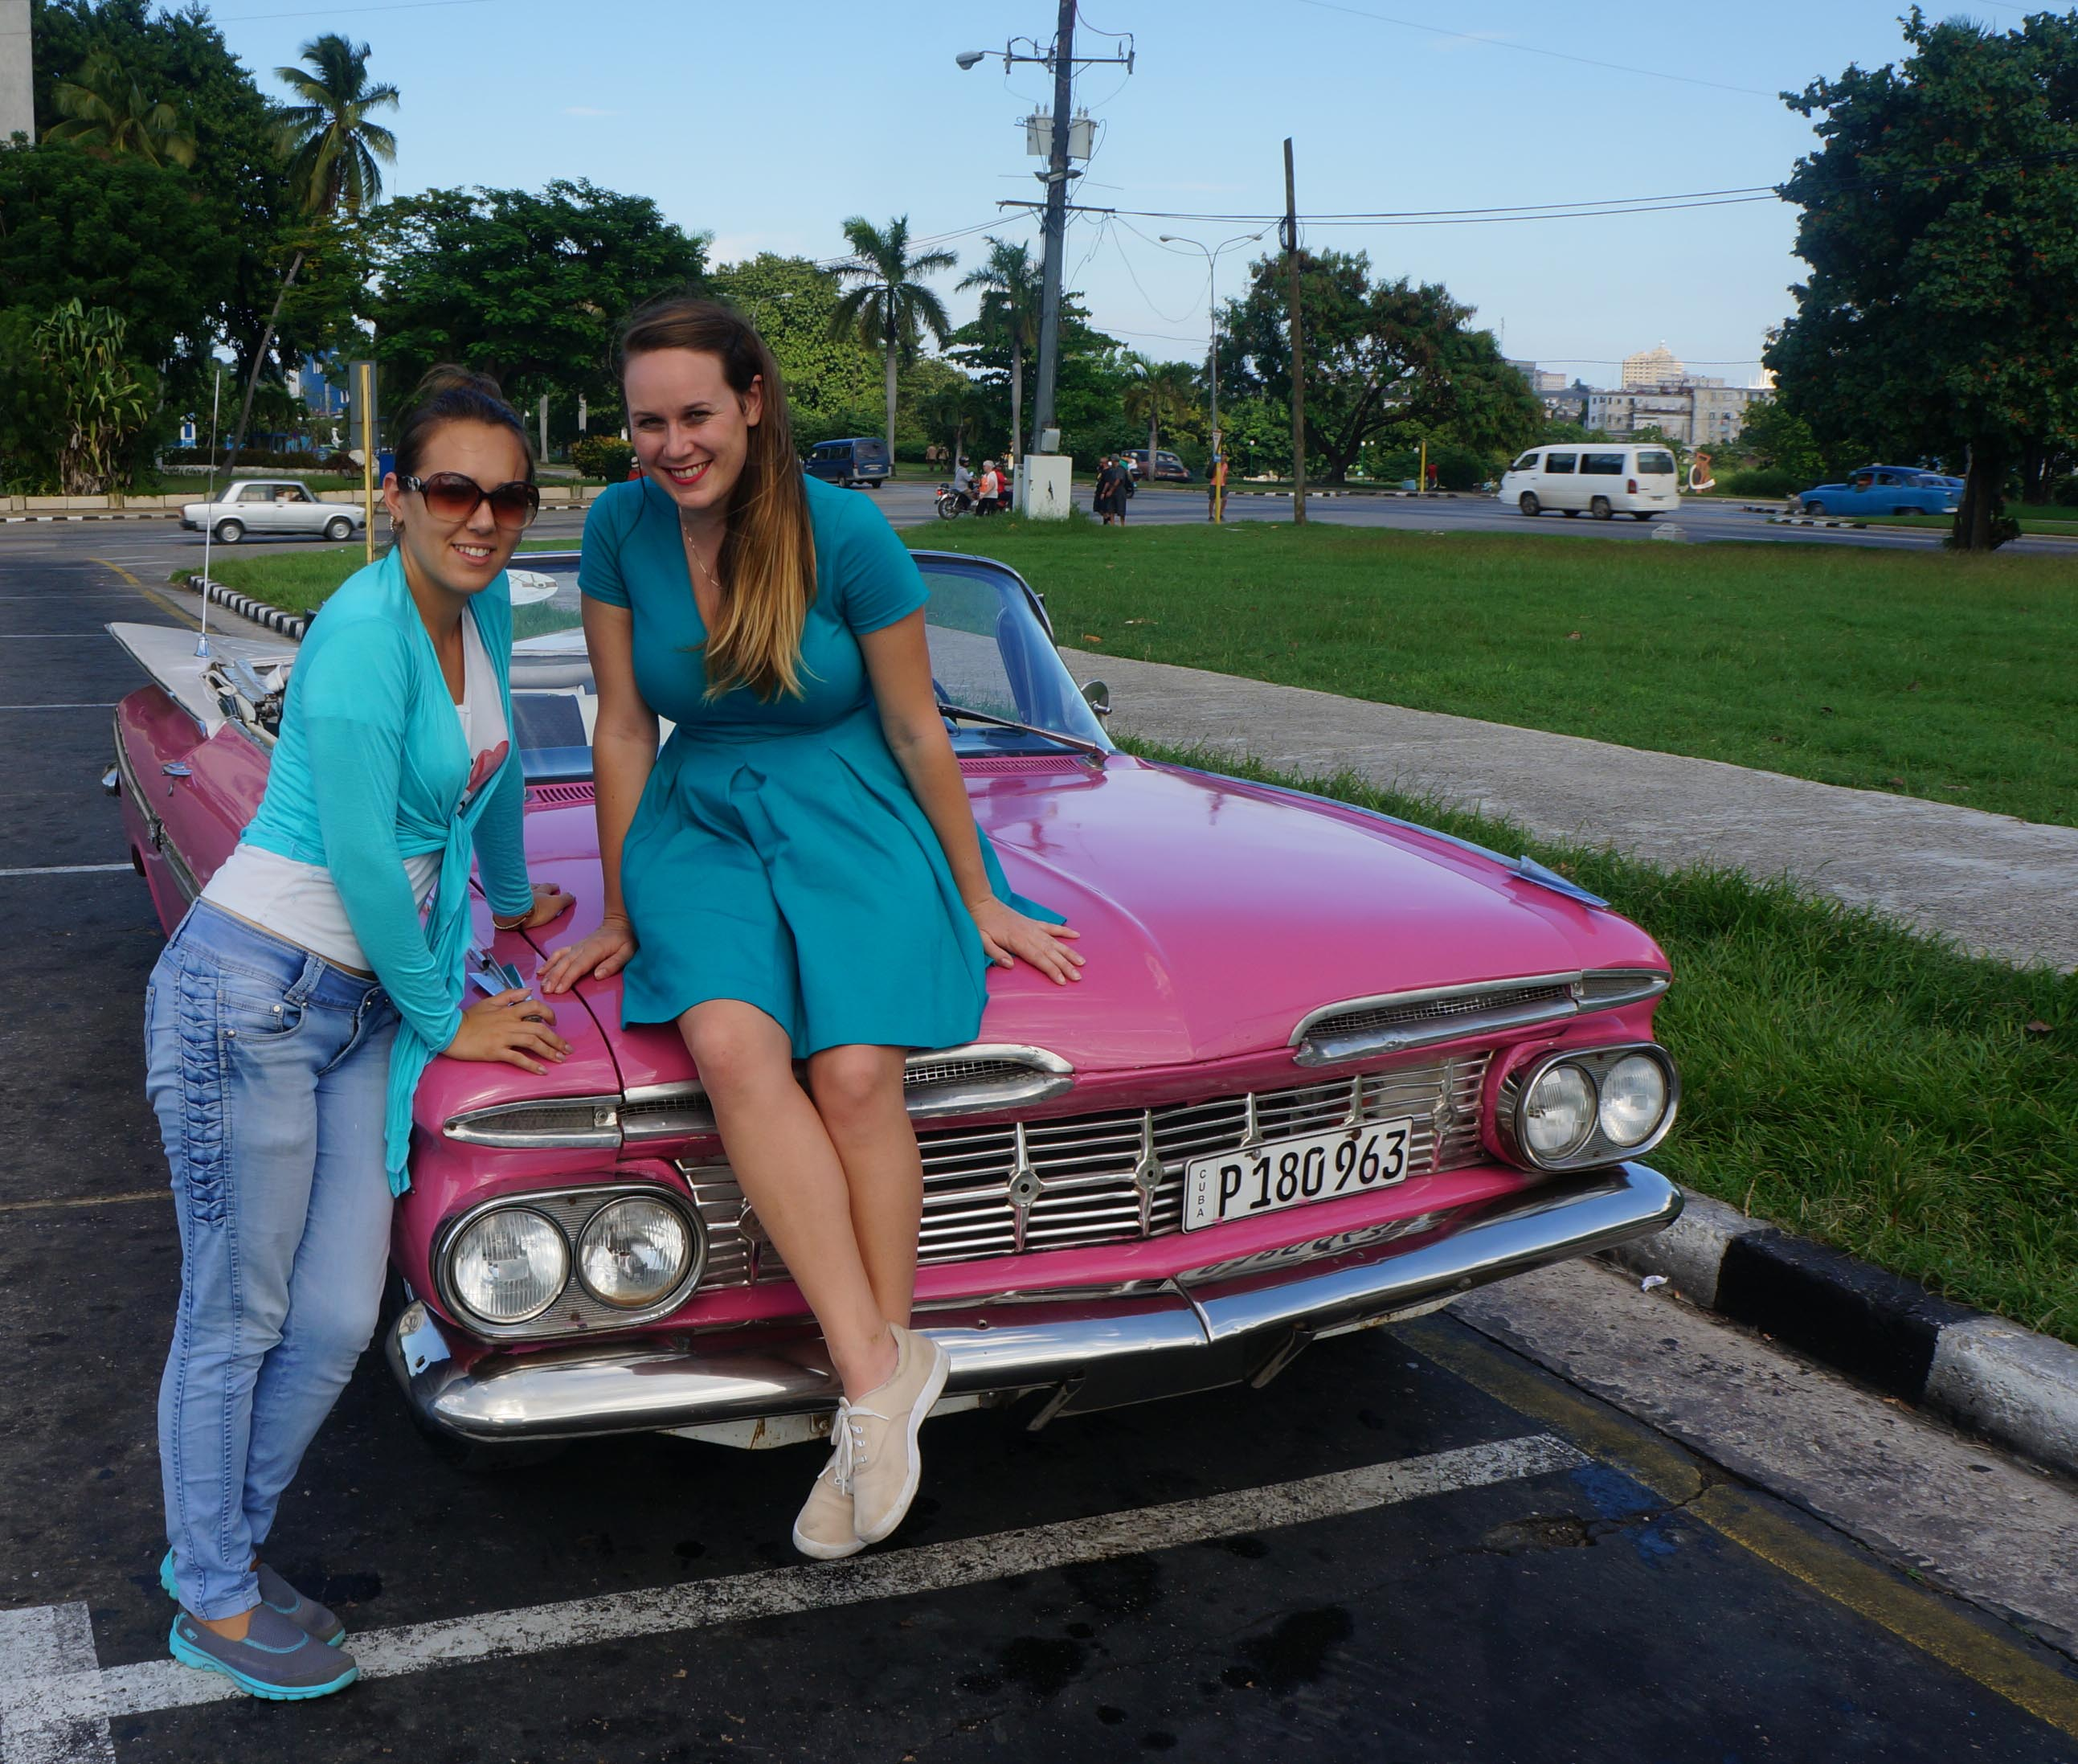 Touring Havana: A Look at Cuba's Most Historic Sights